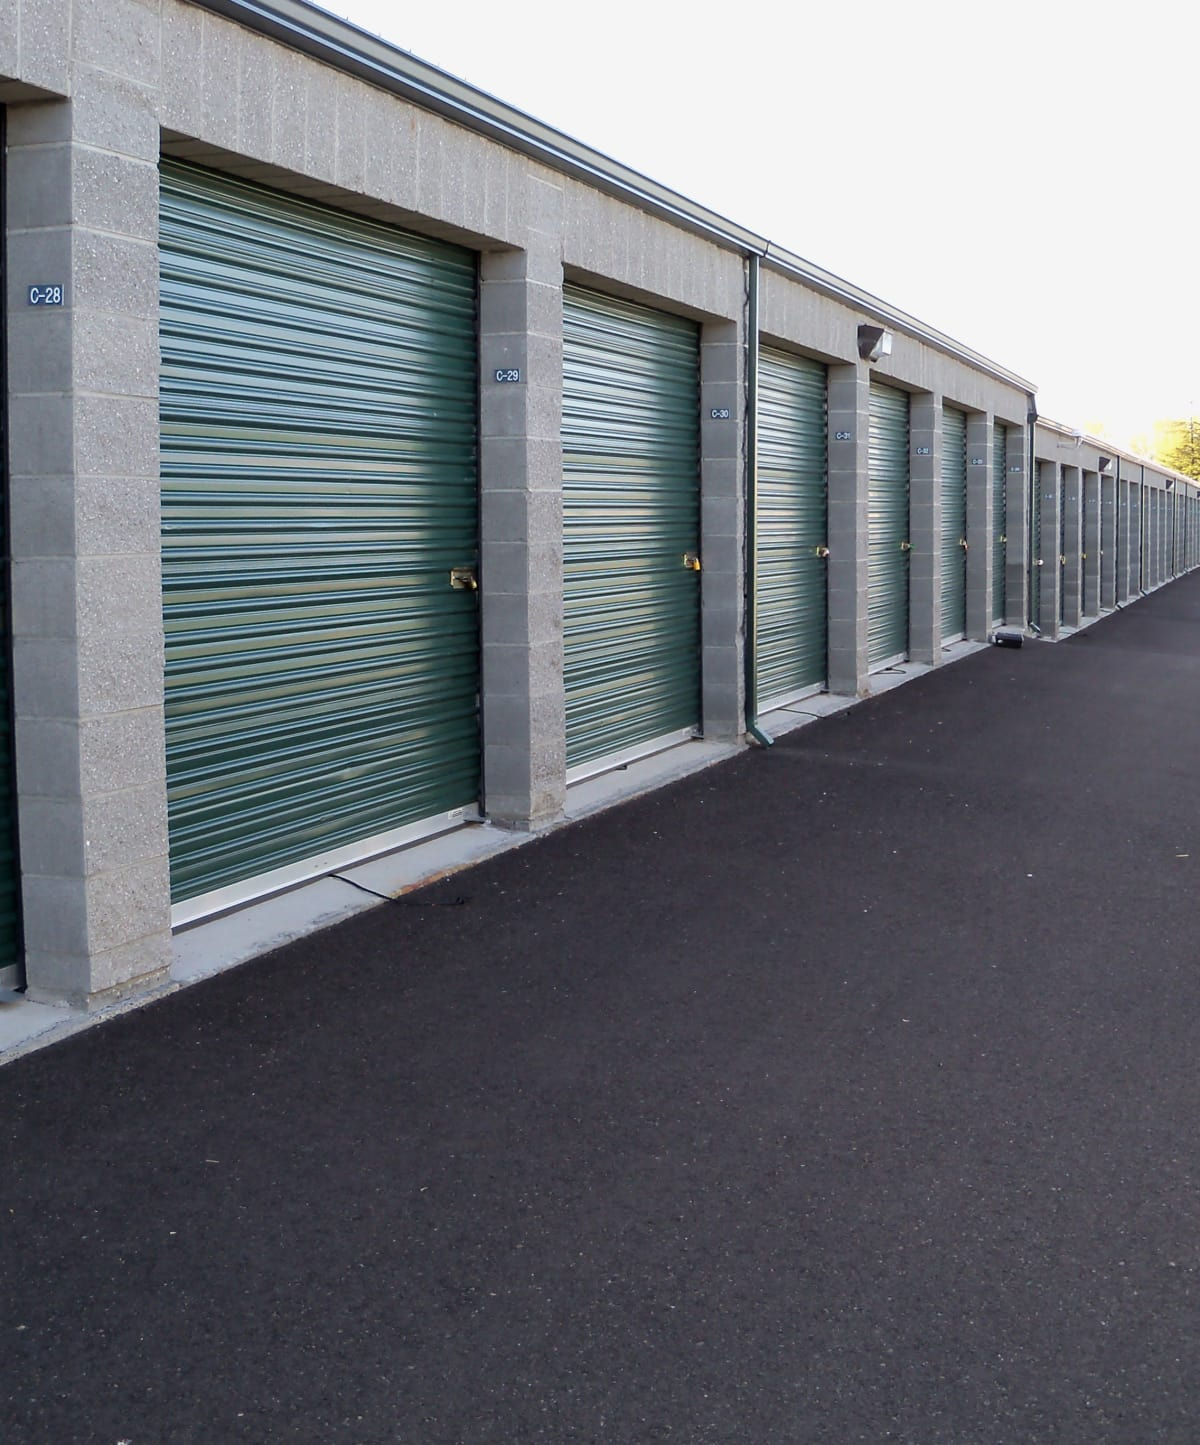 Map and directions to Cascade Self Storage in Medford, Oregon